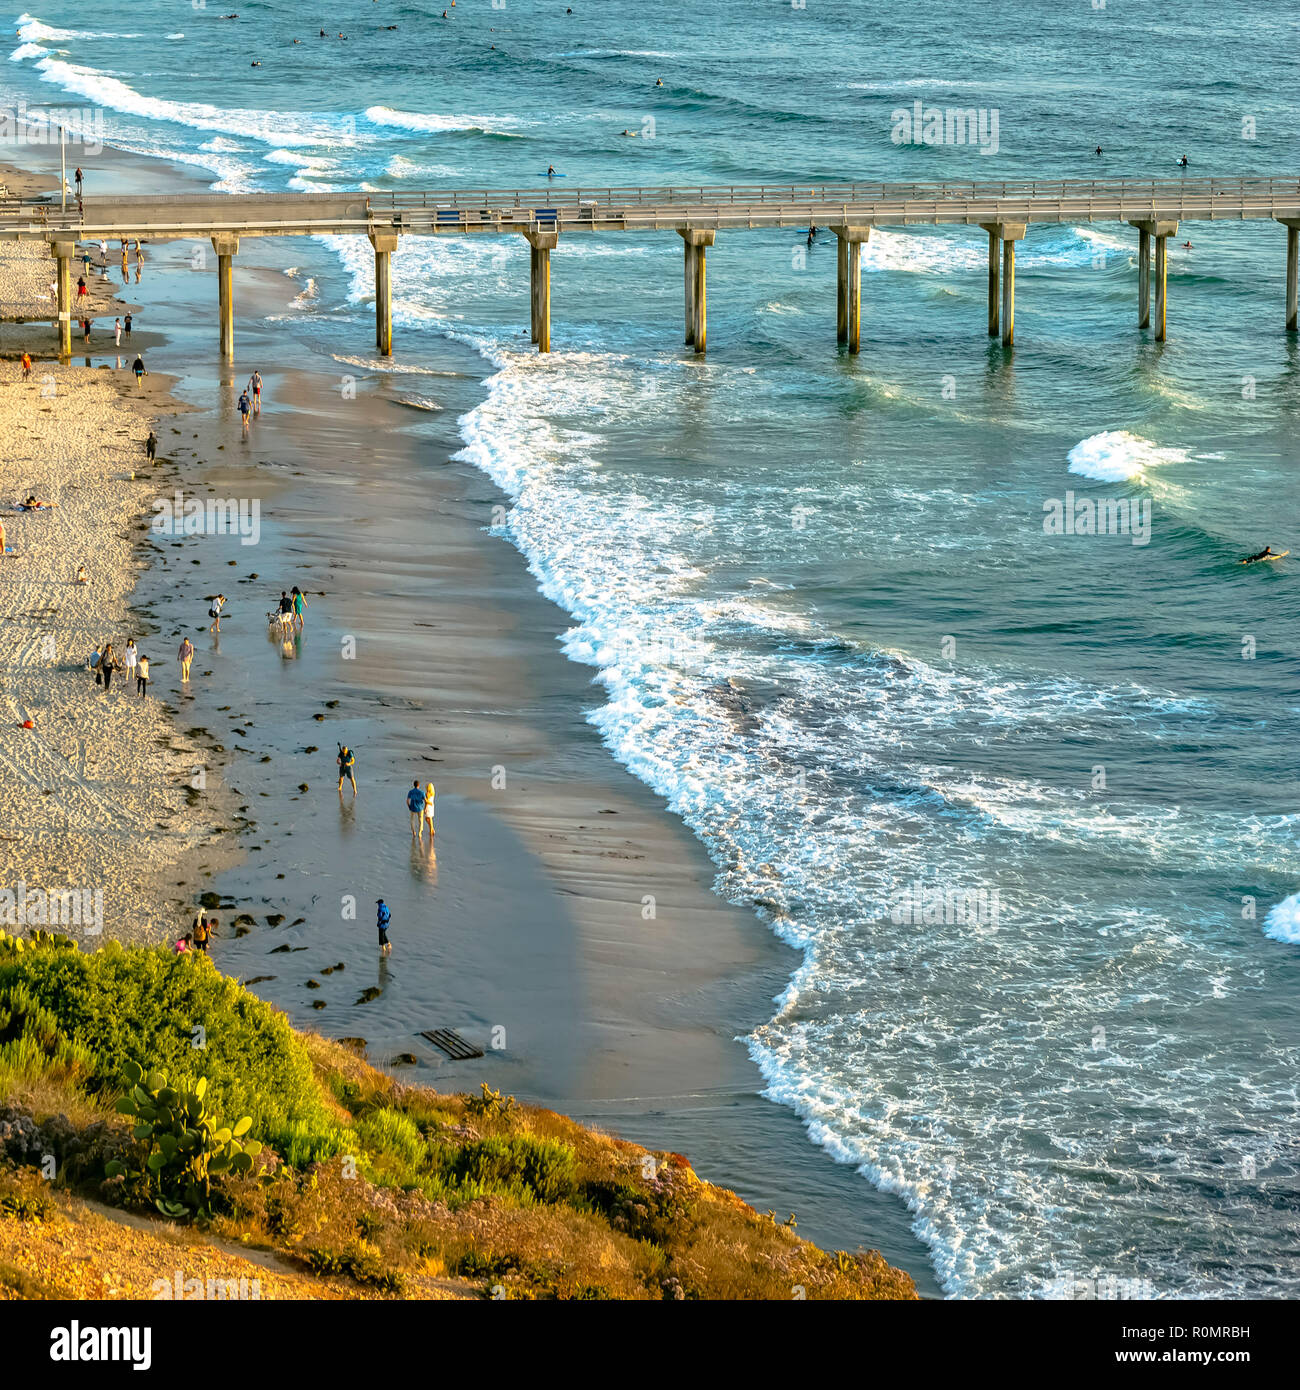 Scripps Pier and people at Pacific Ocean shoreline - Stock Image